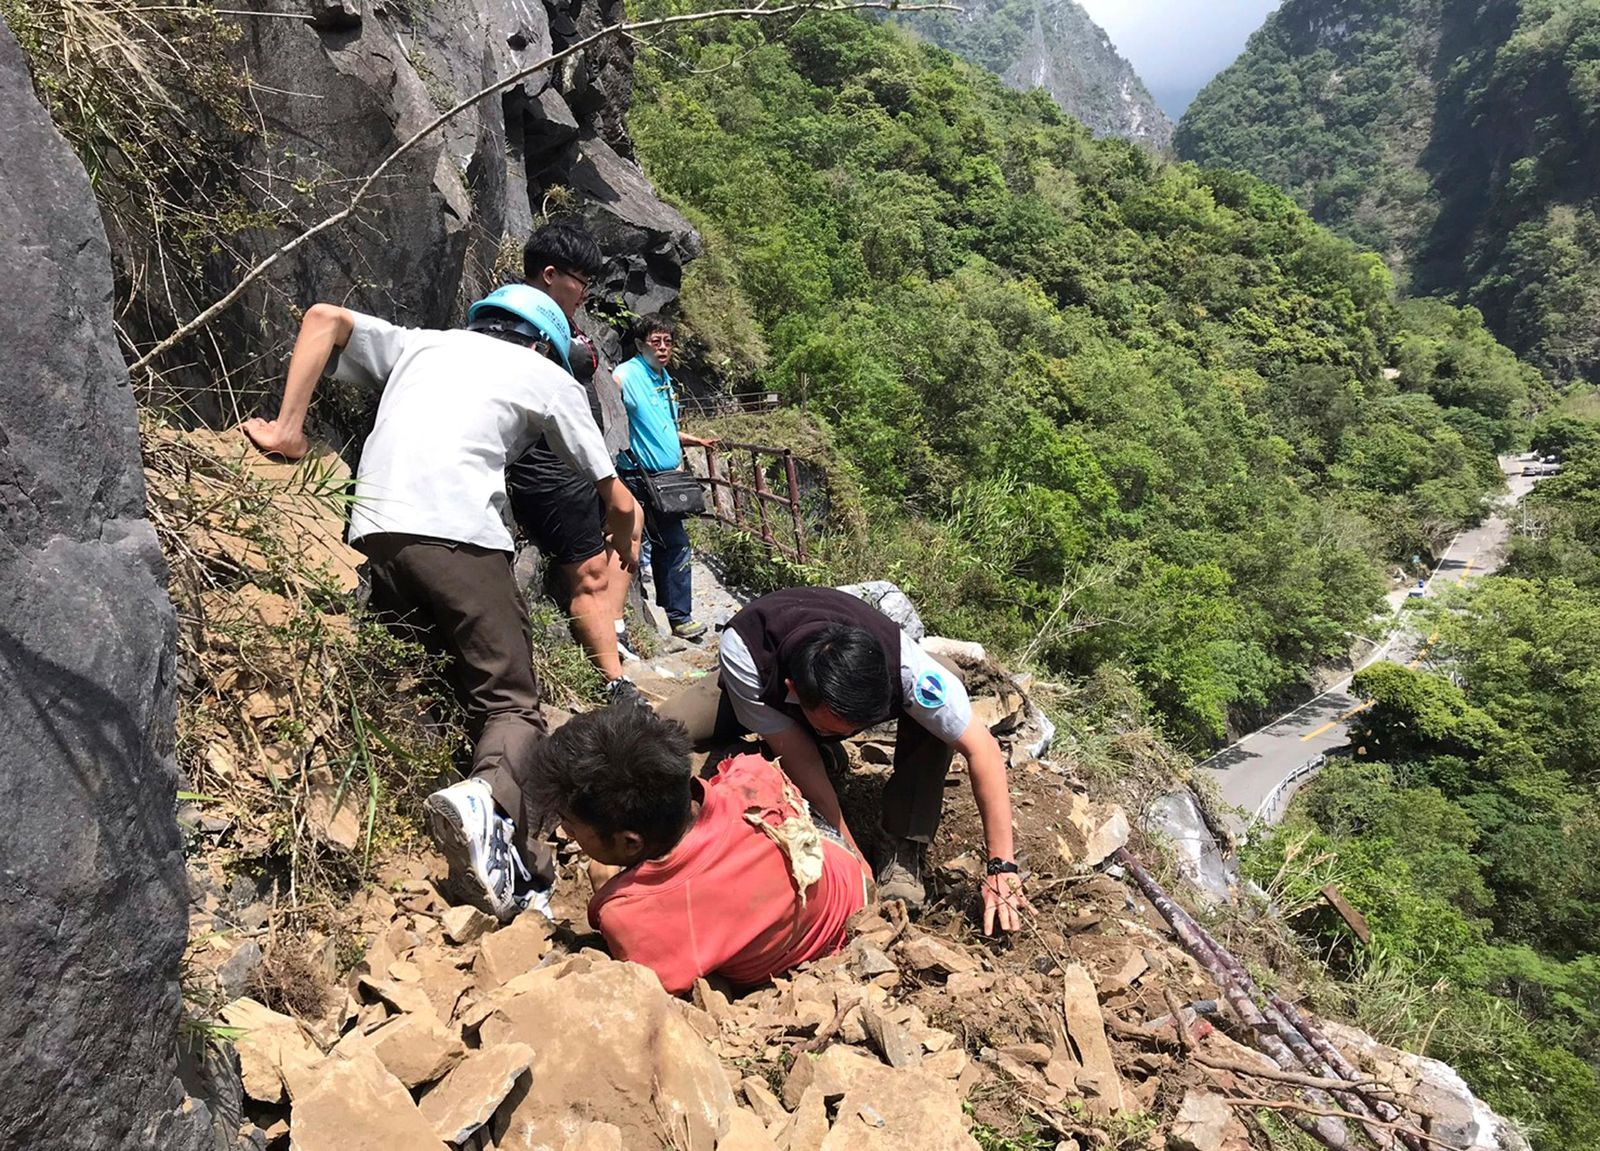 In this photo released by Taroko National Park, an injured Malaysian tourist, in red, is assisted by rescue workers at the Taroko National Park in Hualien in eastern Taiwan Thursday, April 18, 2019.. (Taroko National Park via AP)